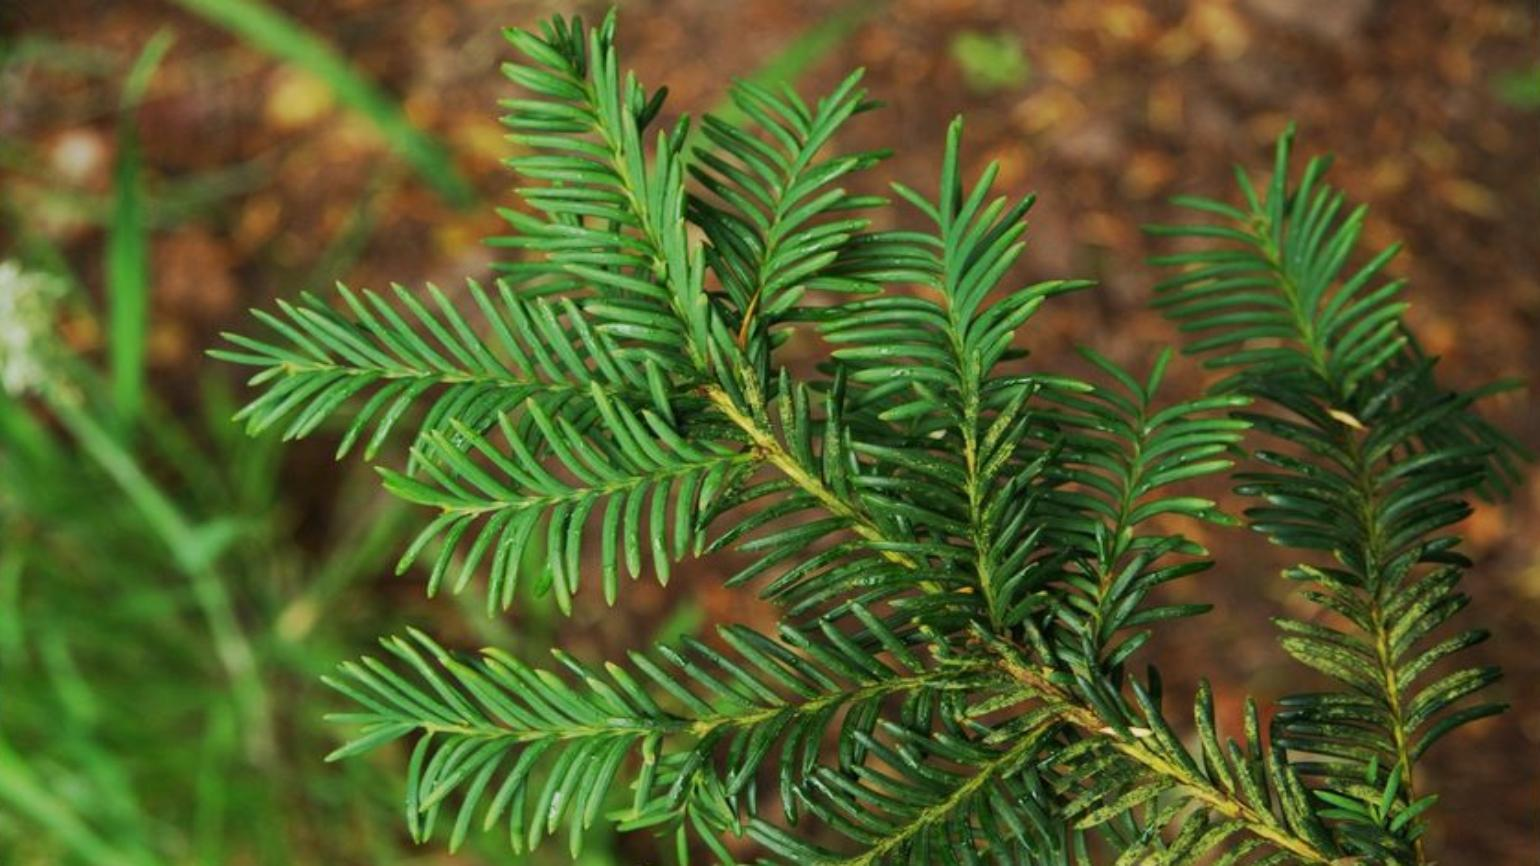 Narrow, needle-like, dark green leaves